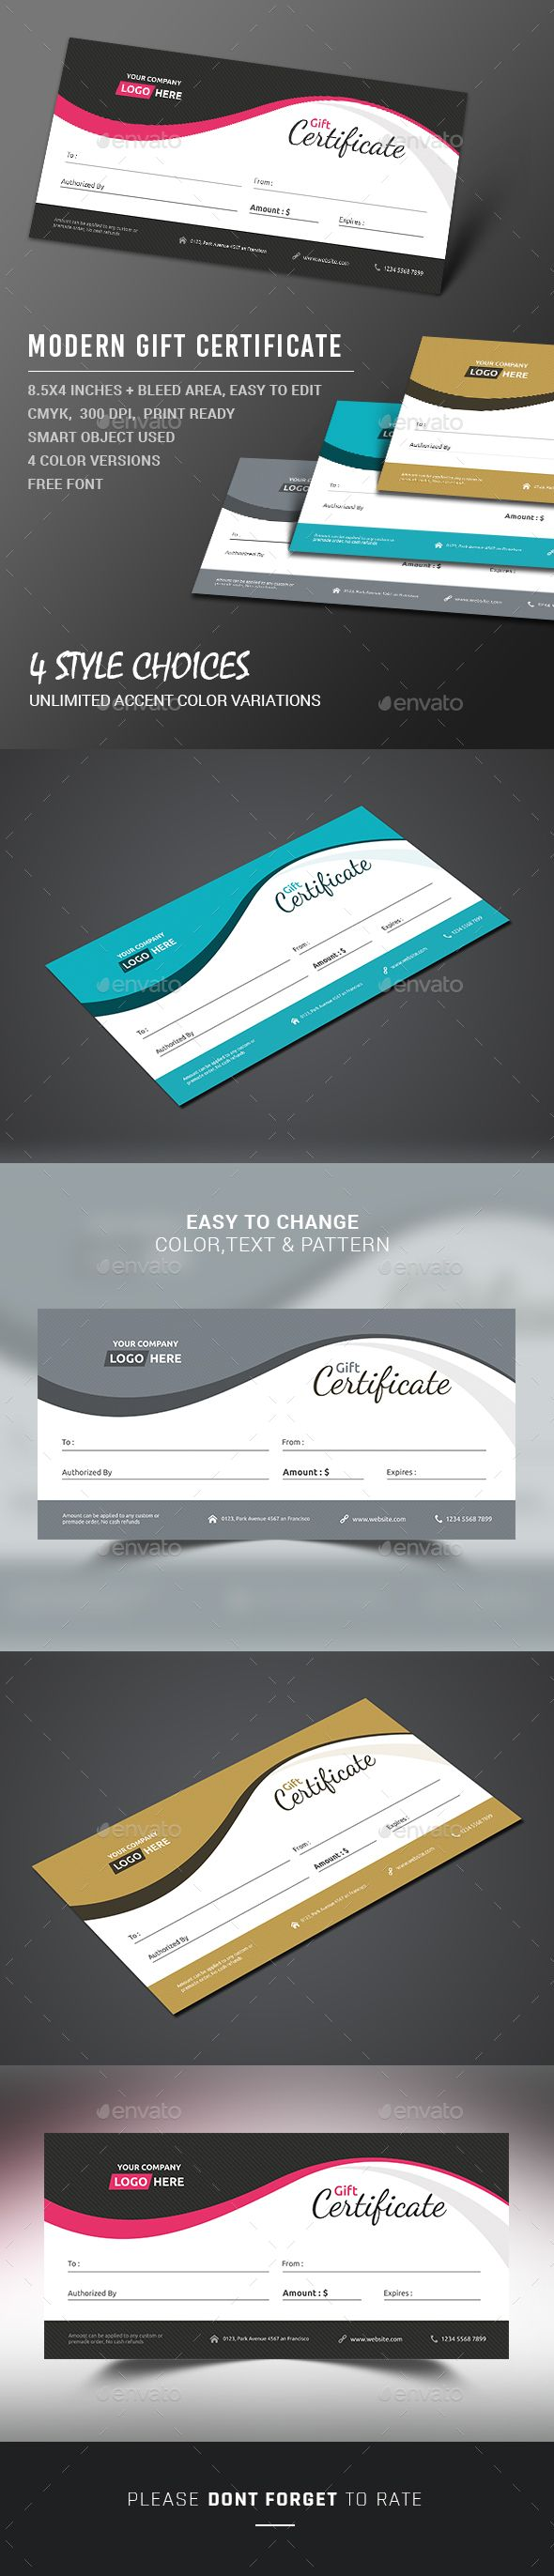 72 best Certificate Templates images on Pinterest | Certificate ...